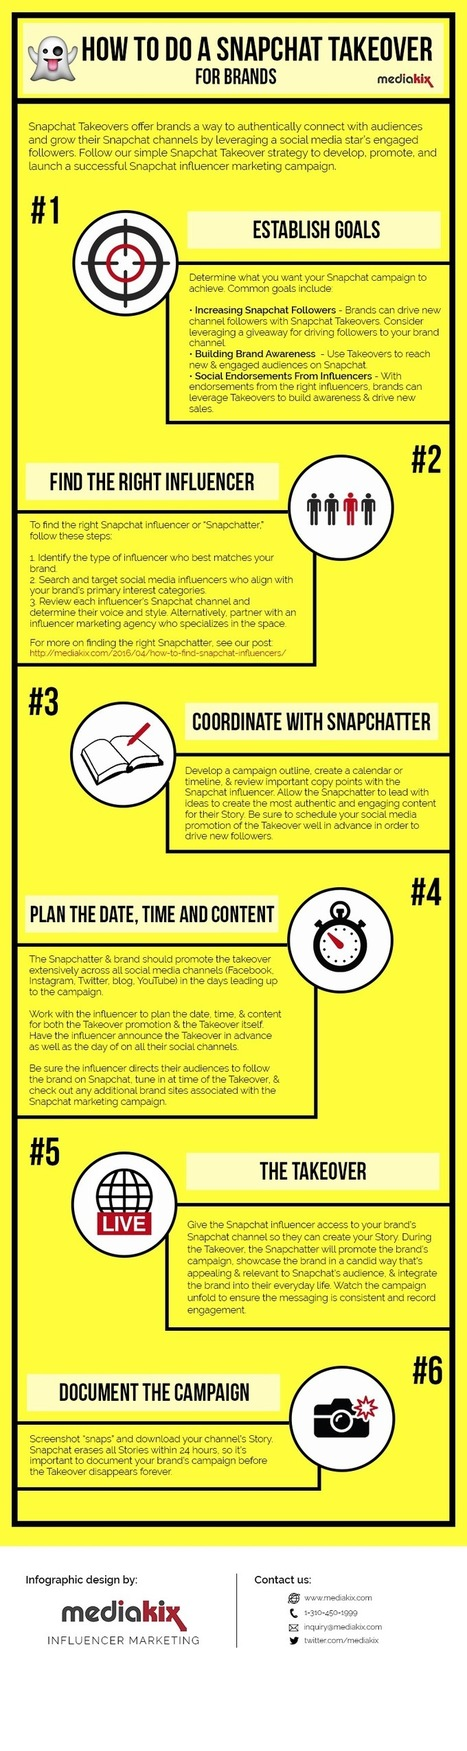 How to launch an effective Snapchat campaign #Infographic | MarketingHits | Scoop.it